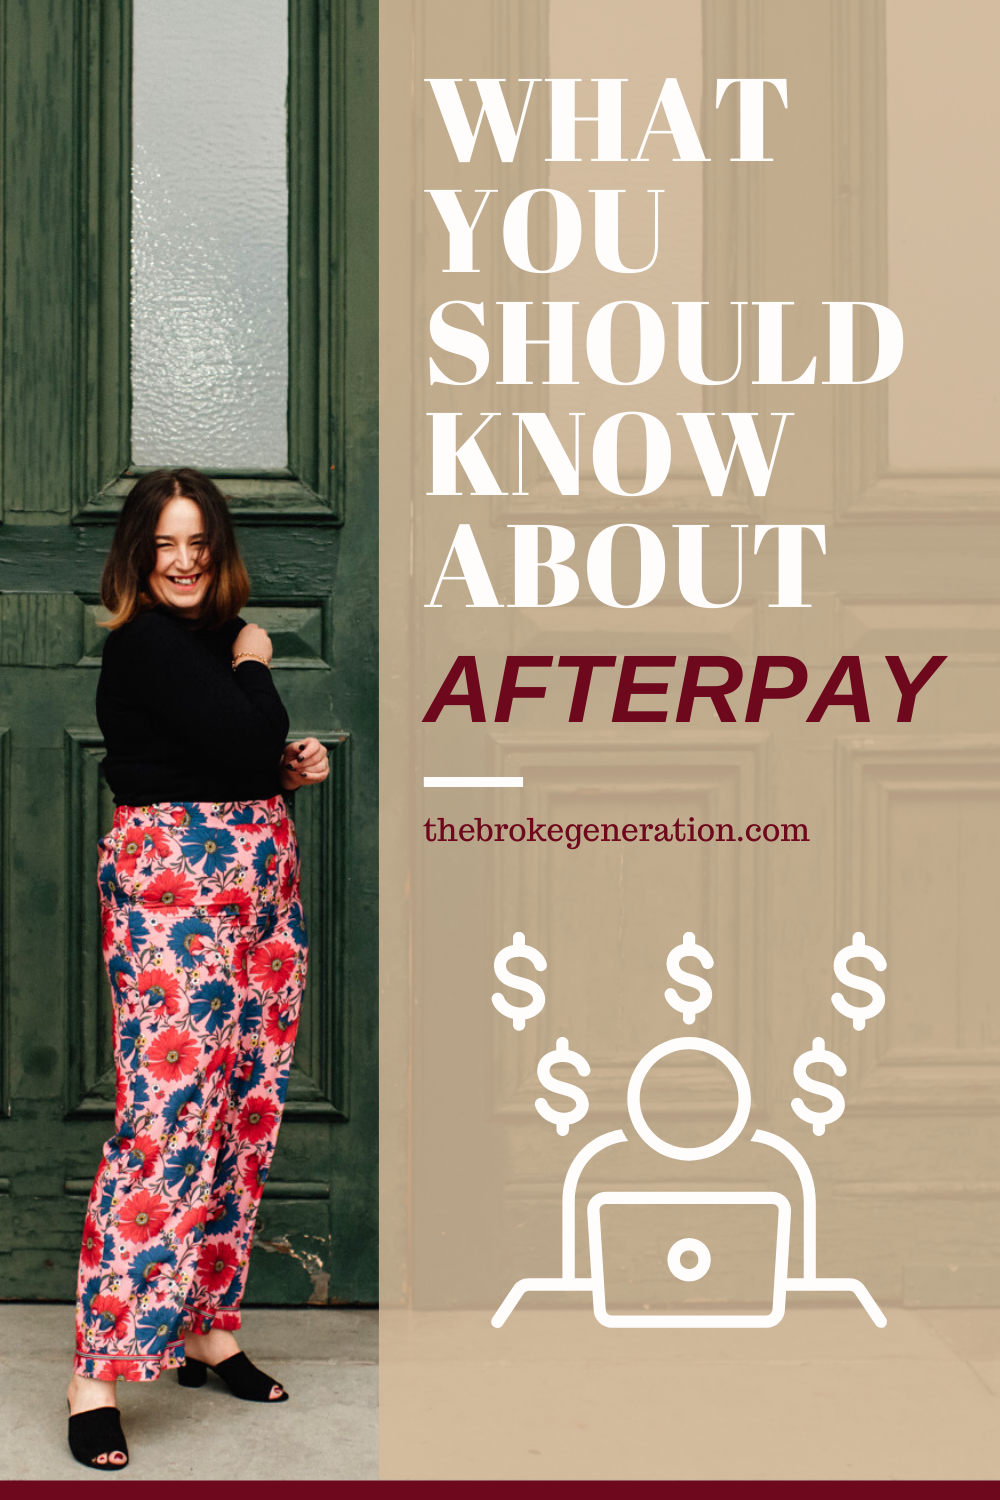 What You Should Know About Afterpay